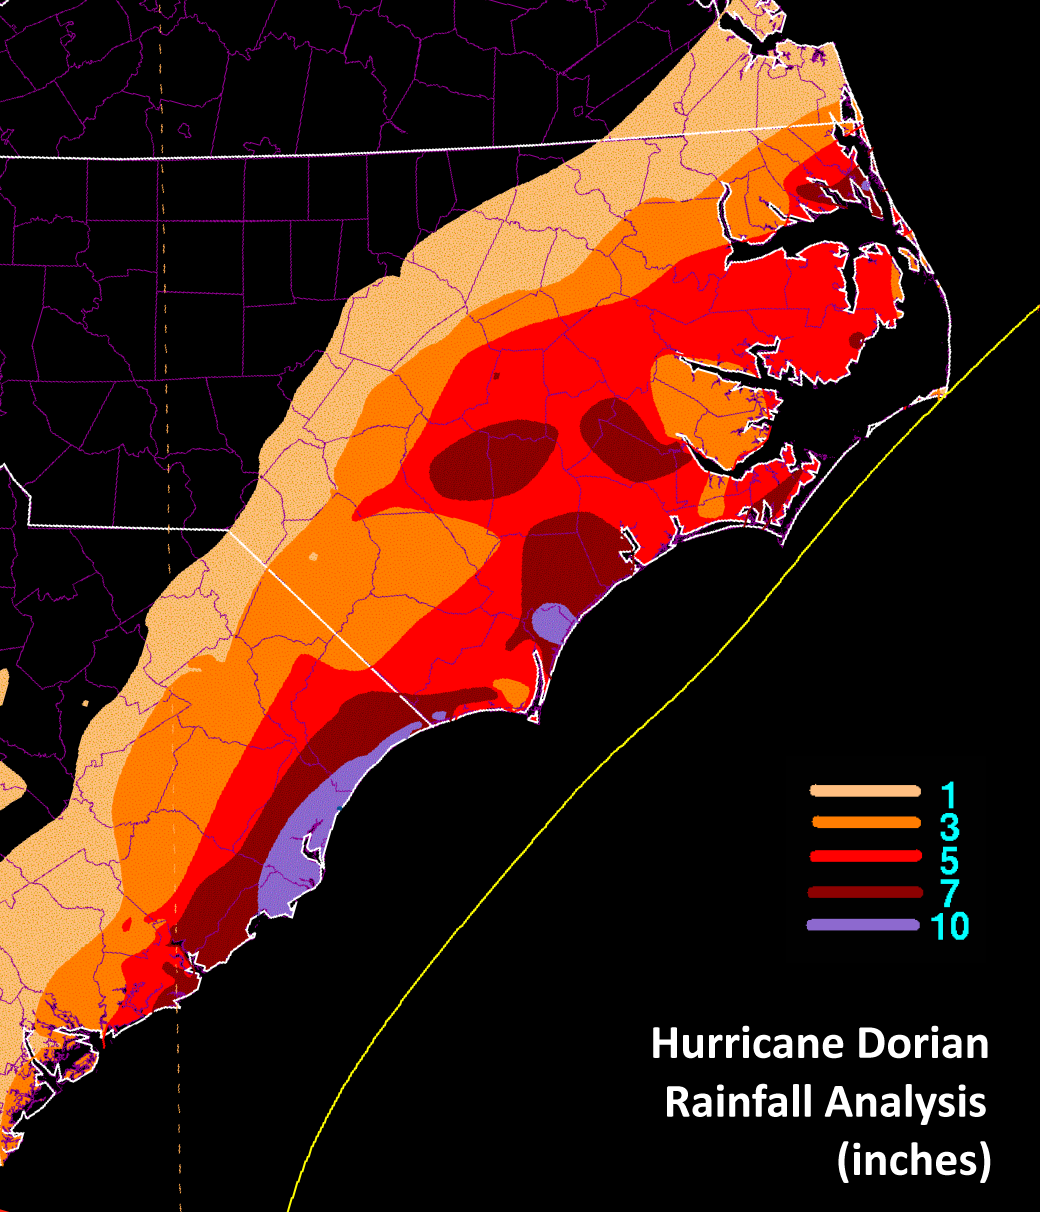 WPC rainfall graphic of Hurricane Dorian